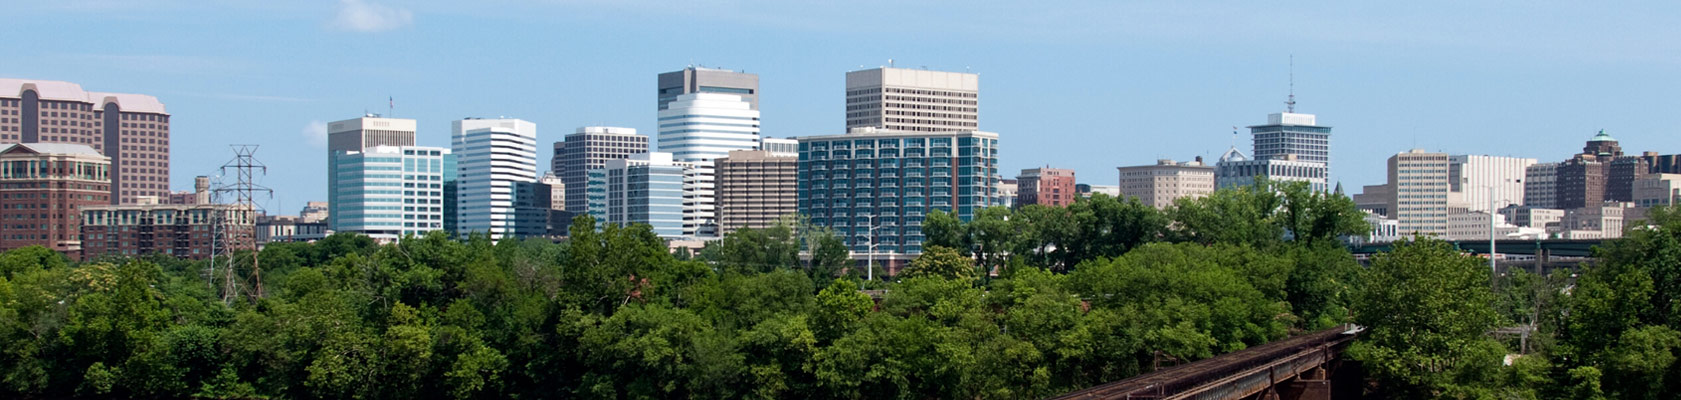 Richmond VA skyline during they day | Breit Cantor: Richmond Personal Injury Attorneys